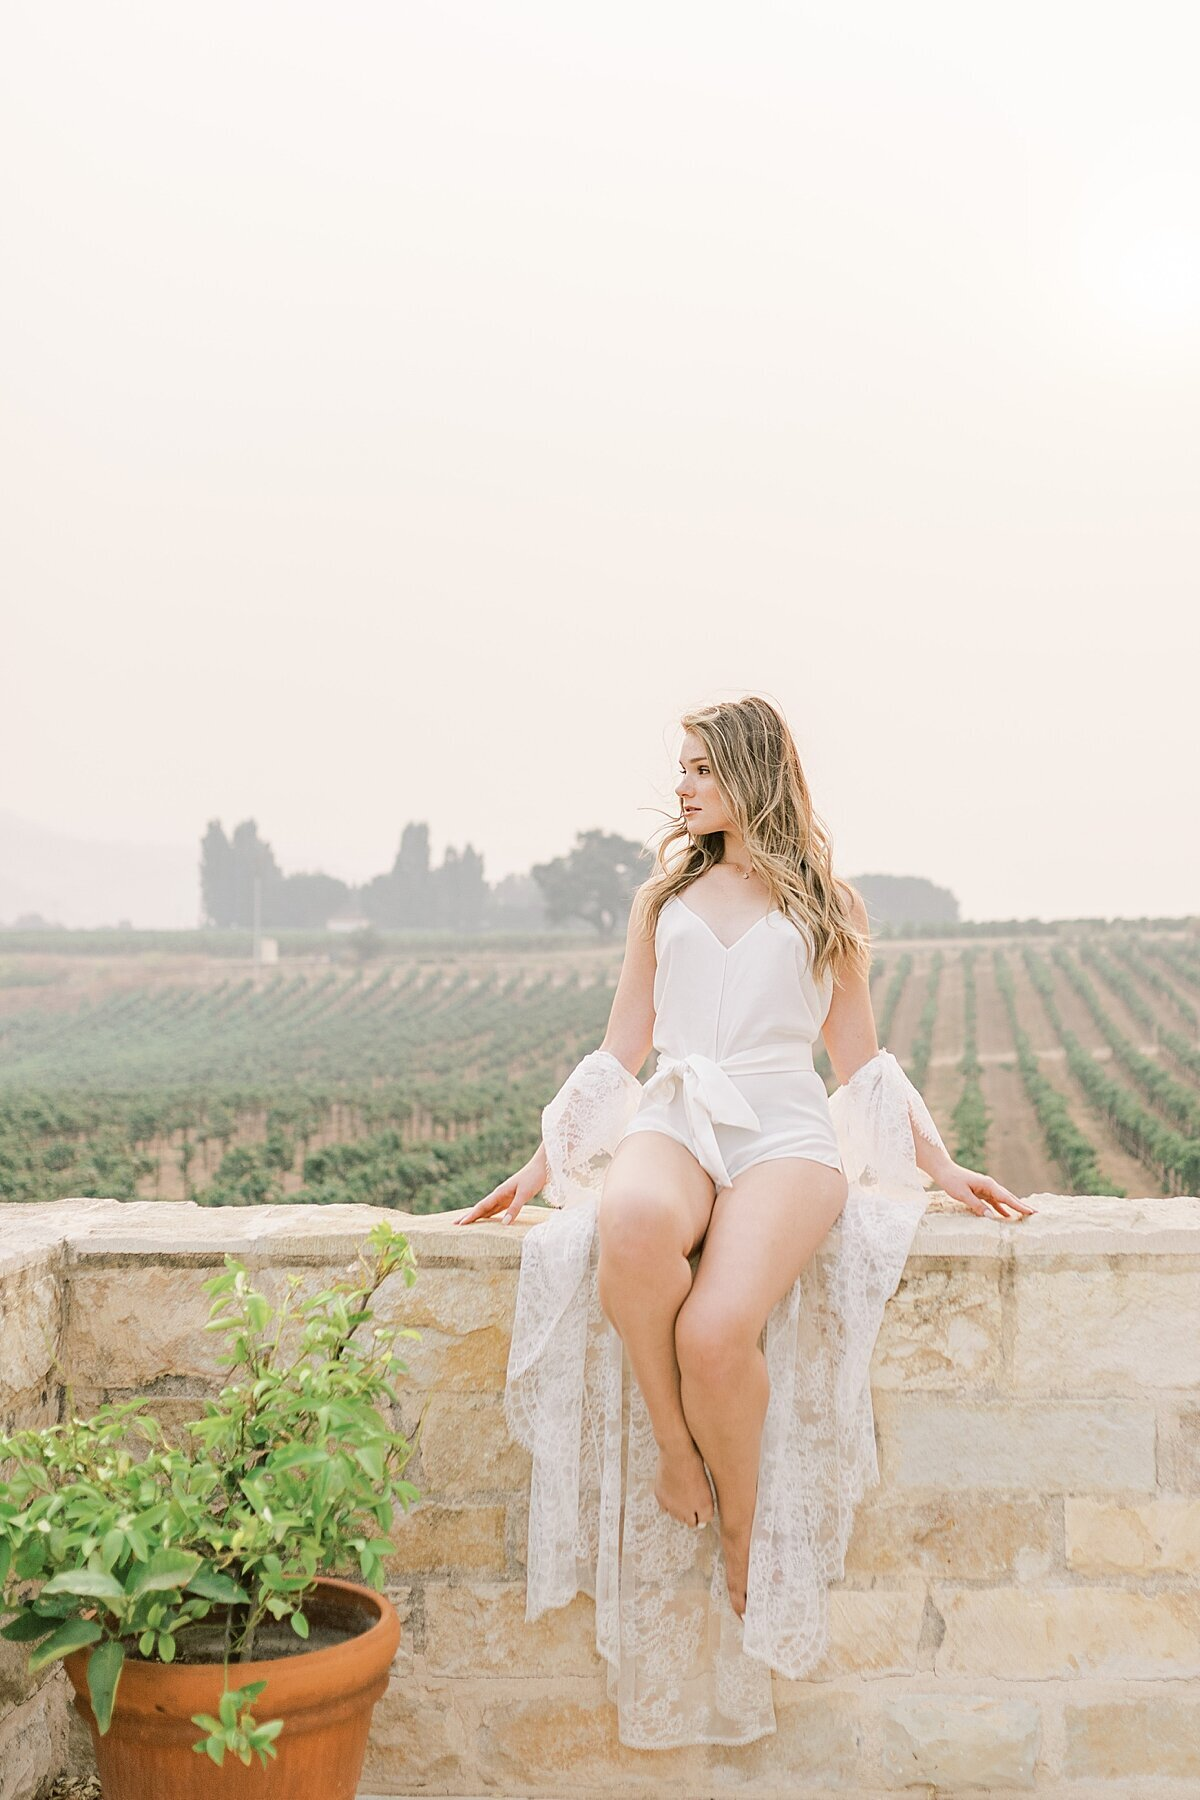 Bride lounging in Bridal lingeire surrounded by vineyards